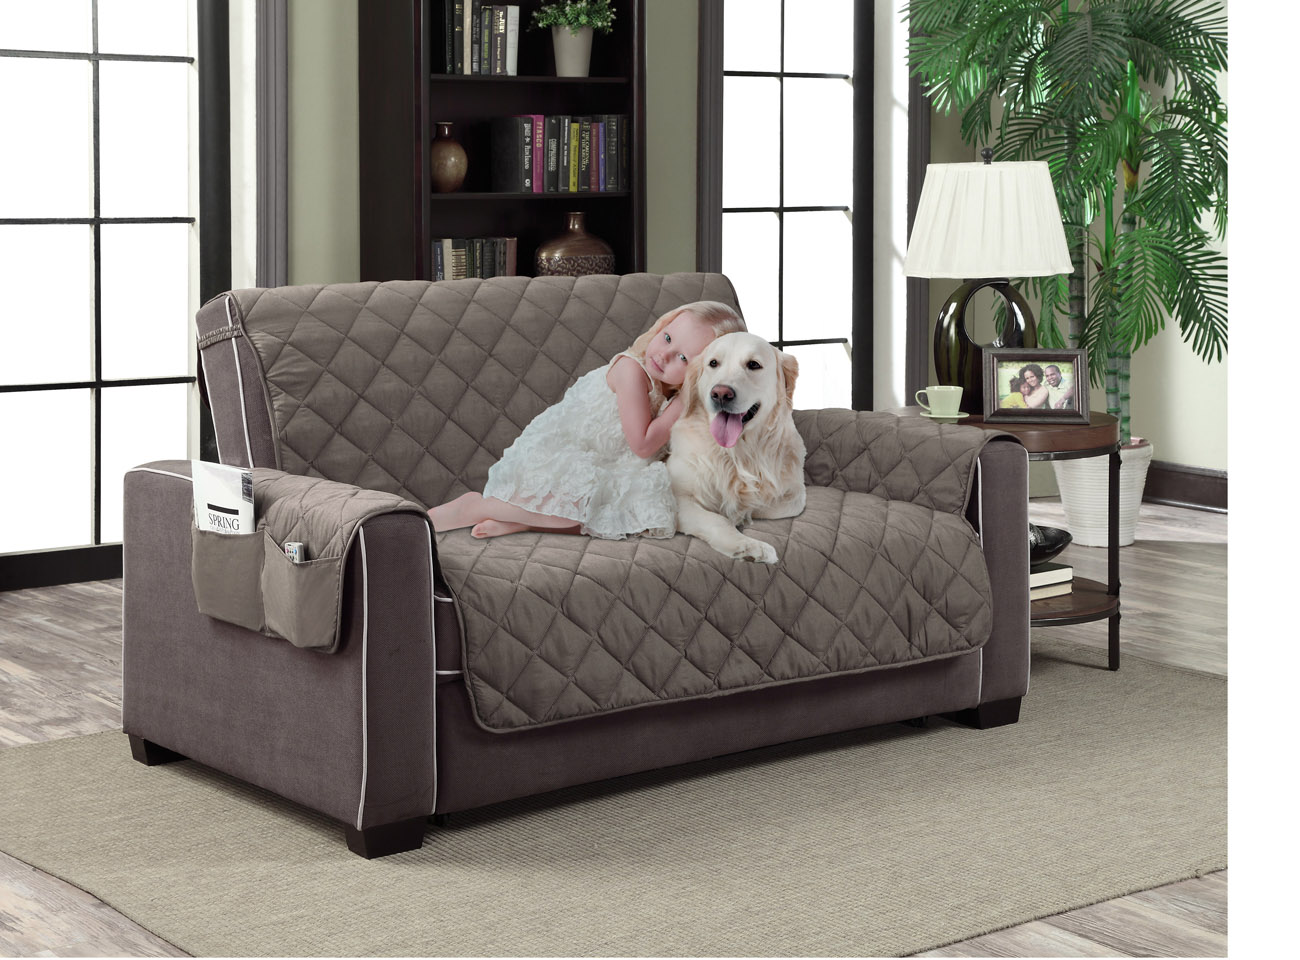 Home Dynamix Slipcovers: All Season Quilted Microfiber Pet Furniture Couch  Protector Cover   Gray   Walmart.com